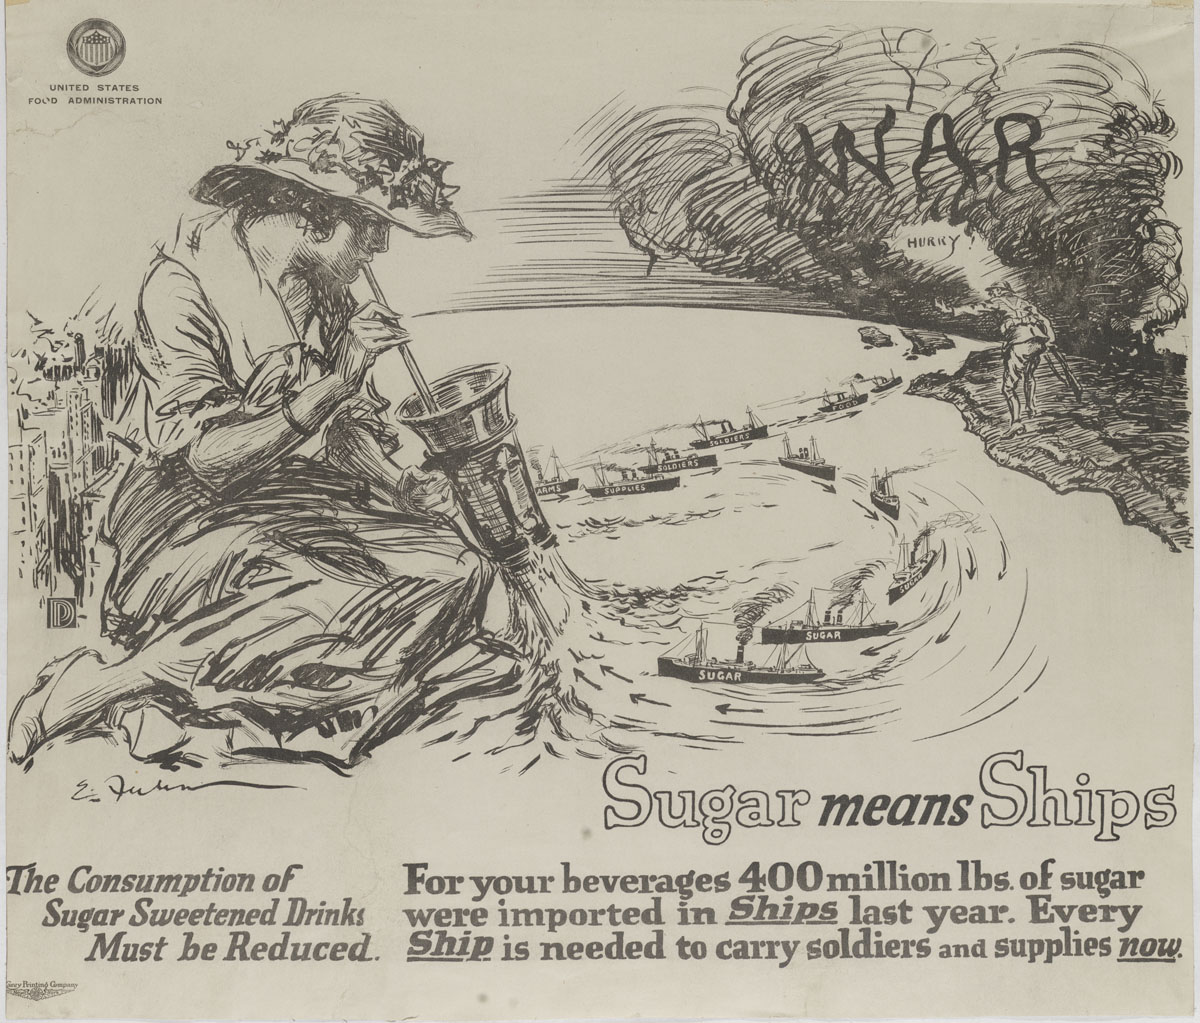 Ernest Fuhr, Sugar Means Ships (New York, 1917). Lithograph.